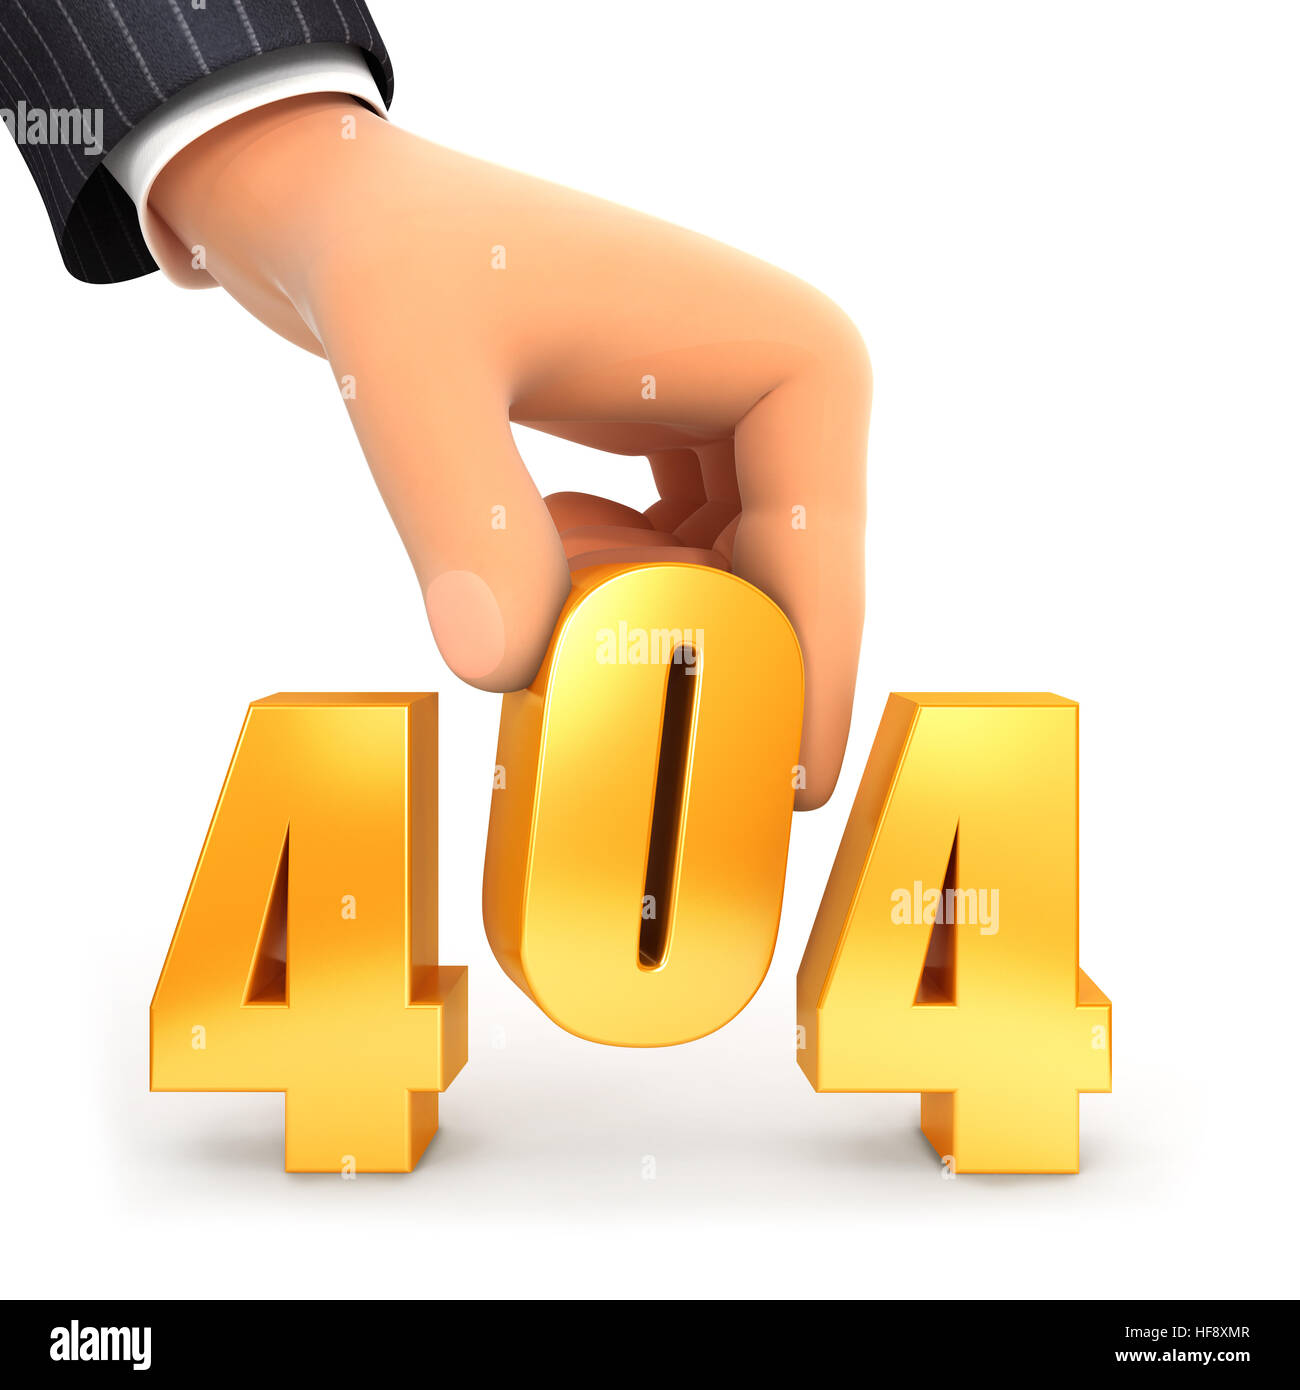 3d hand and error 404 concept, illustration with isolated white background Stock Photo